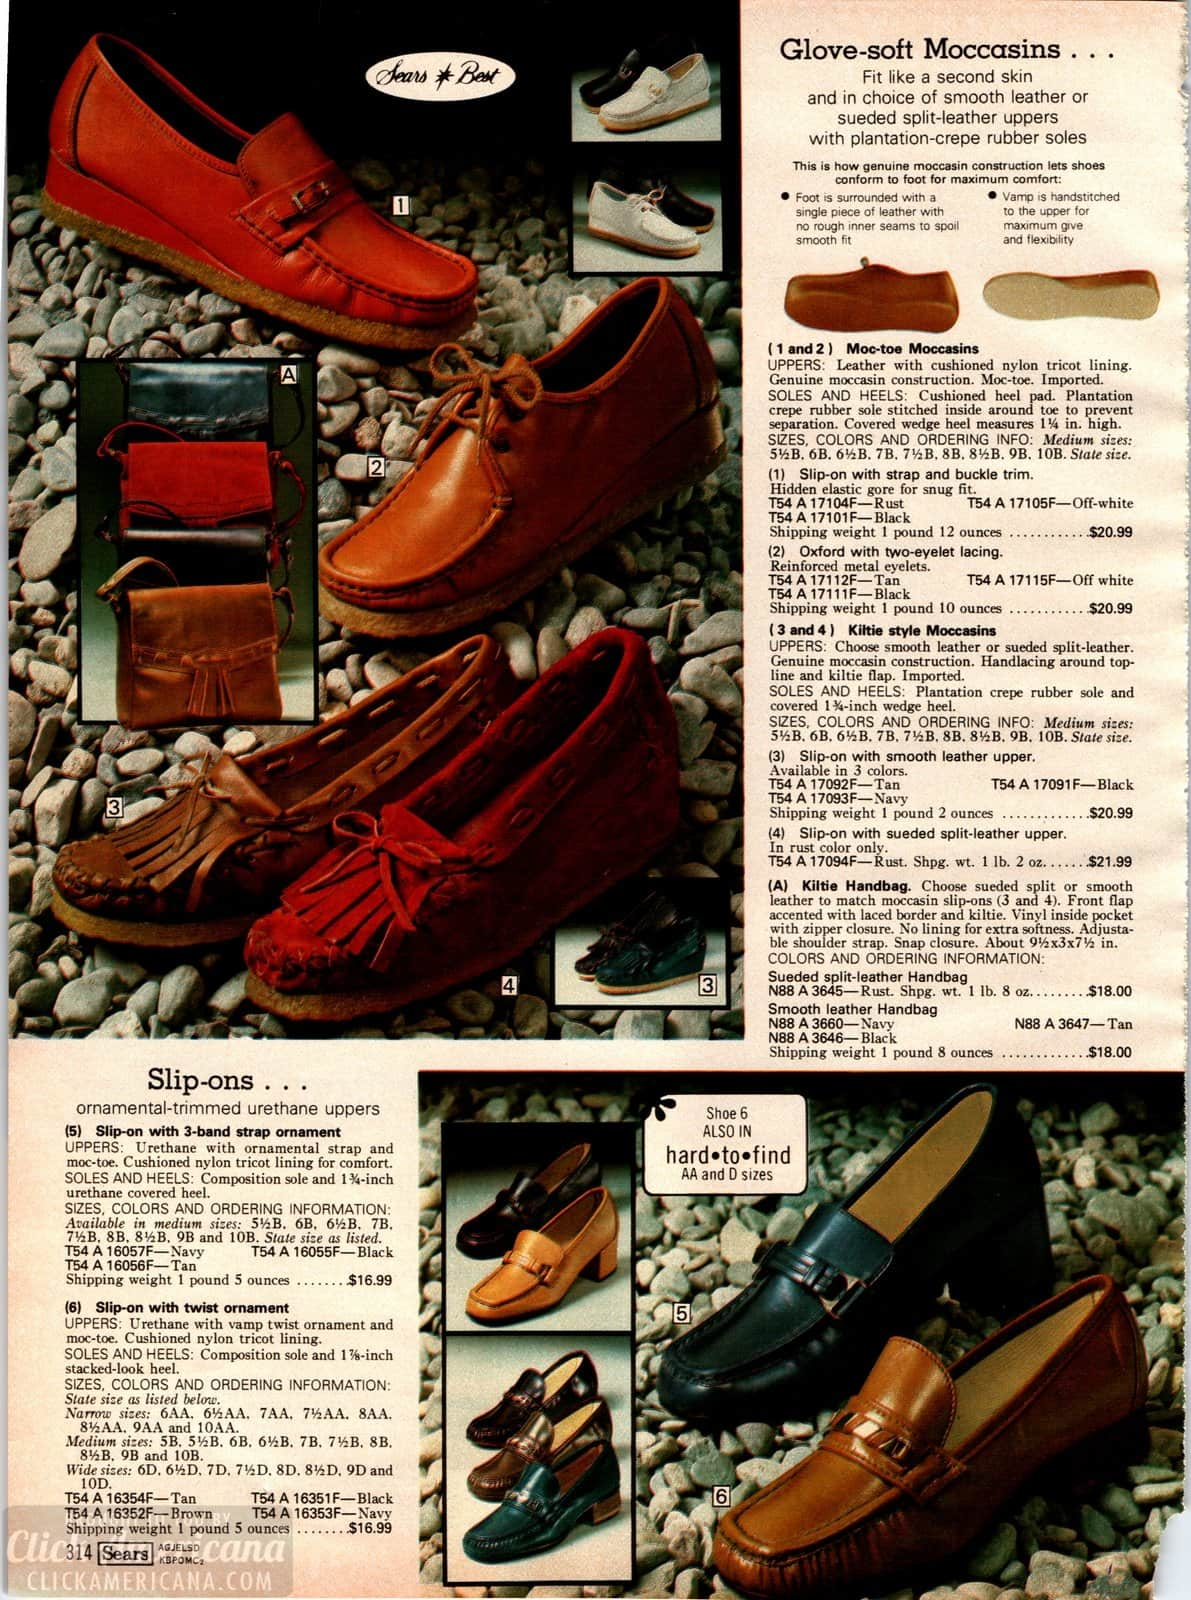 Vintage moccasin-style shoes and slip-on footwear for women from 1979